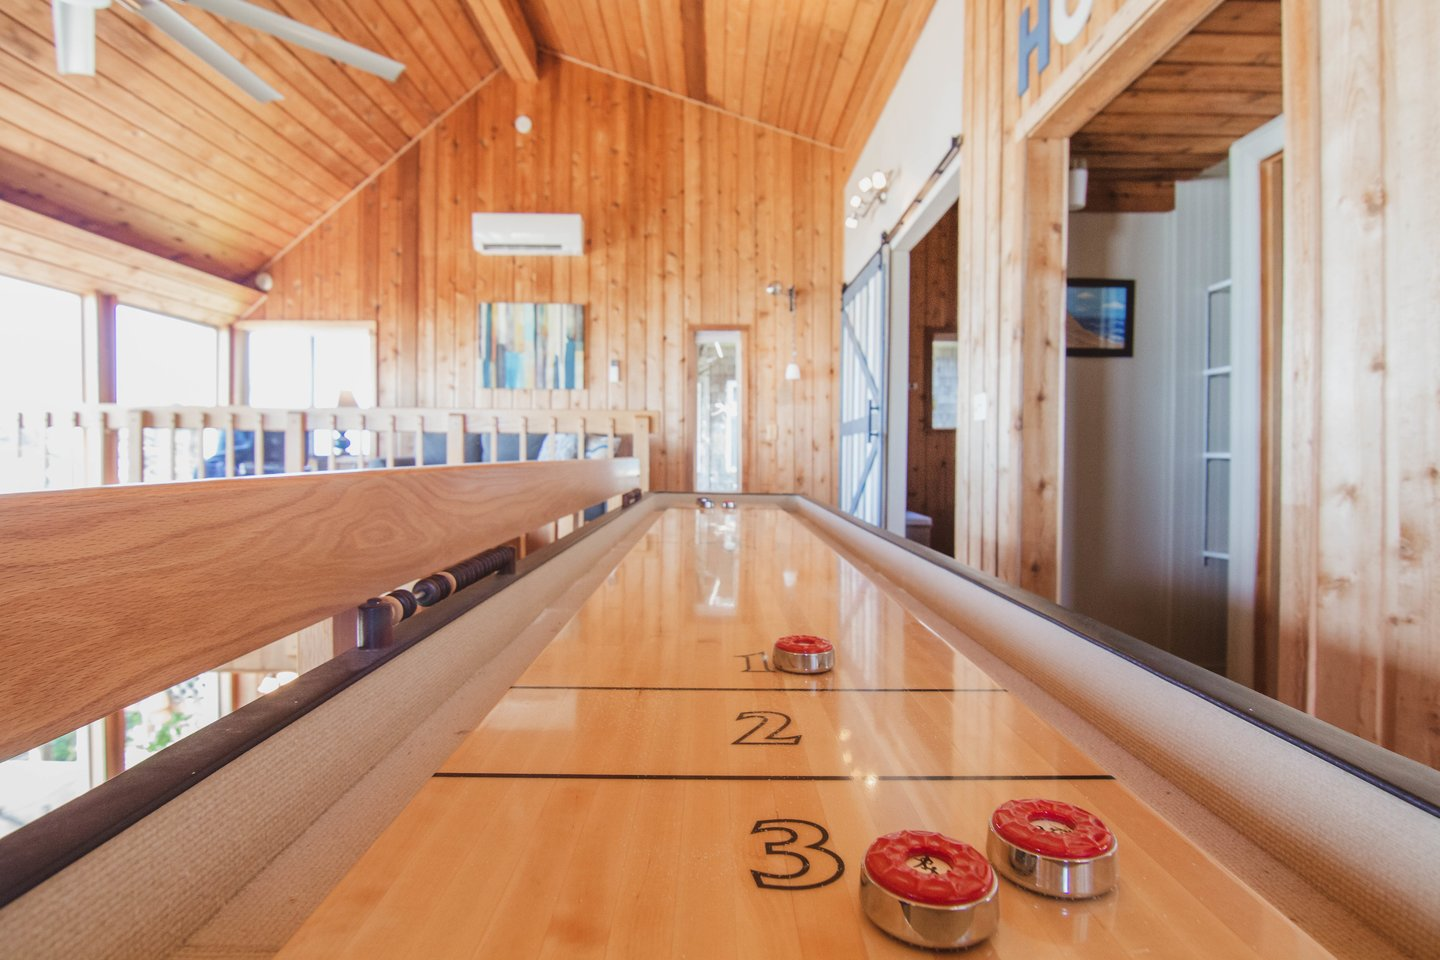 Enjoy a game of shuffleboard upstairs.